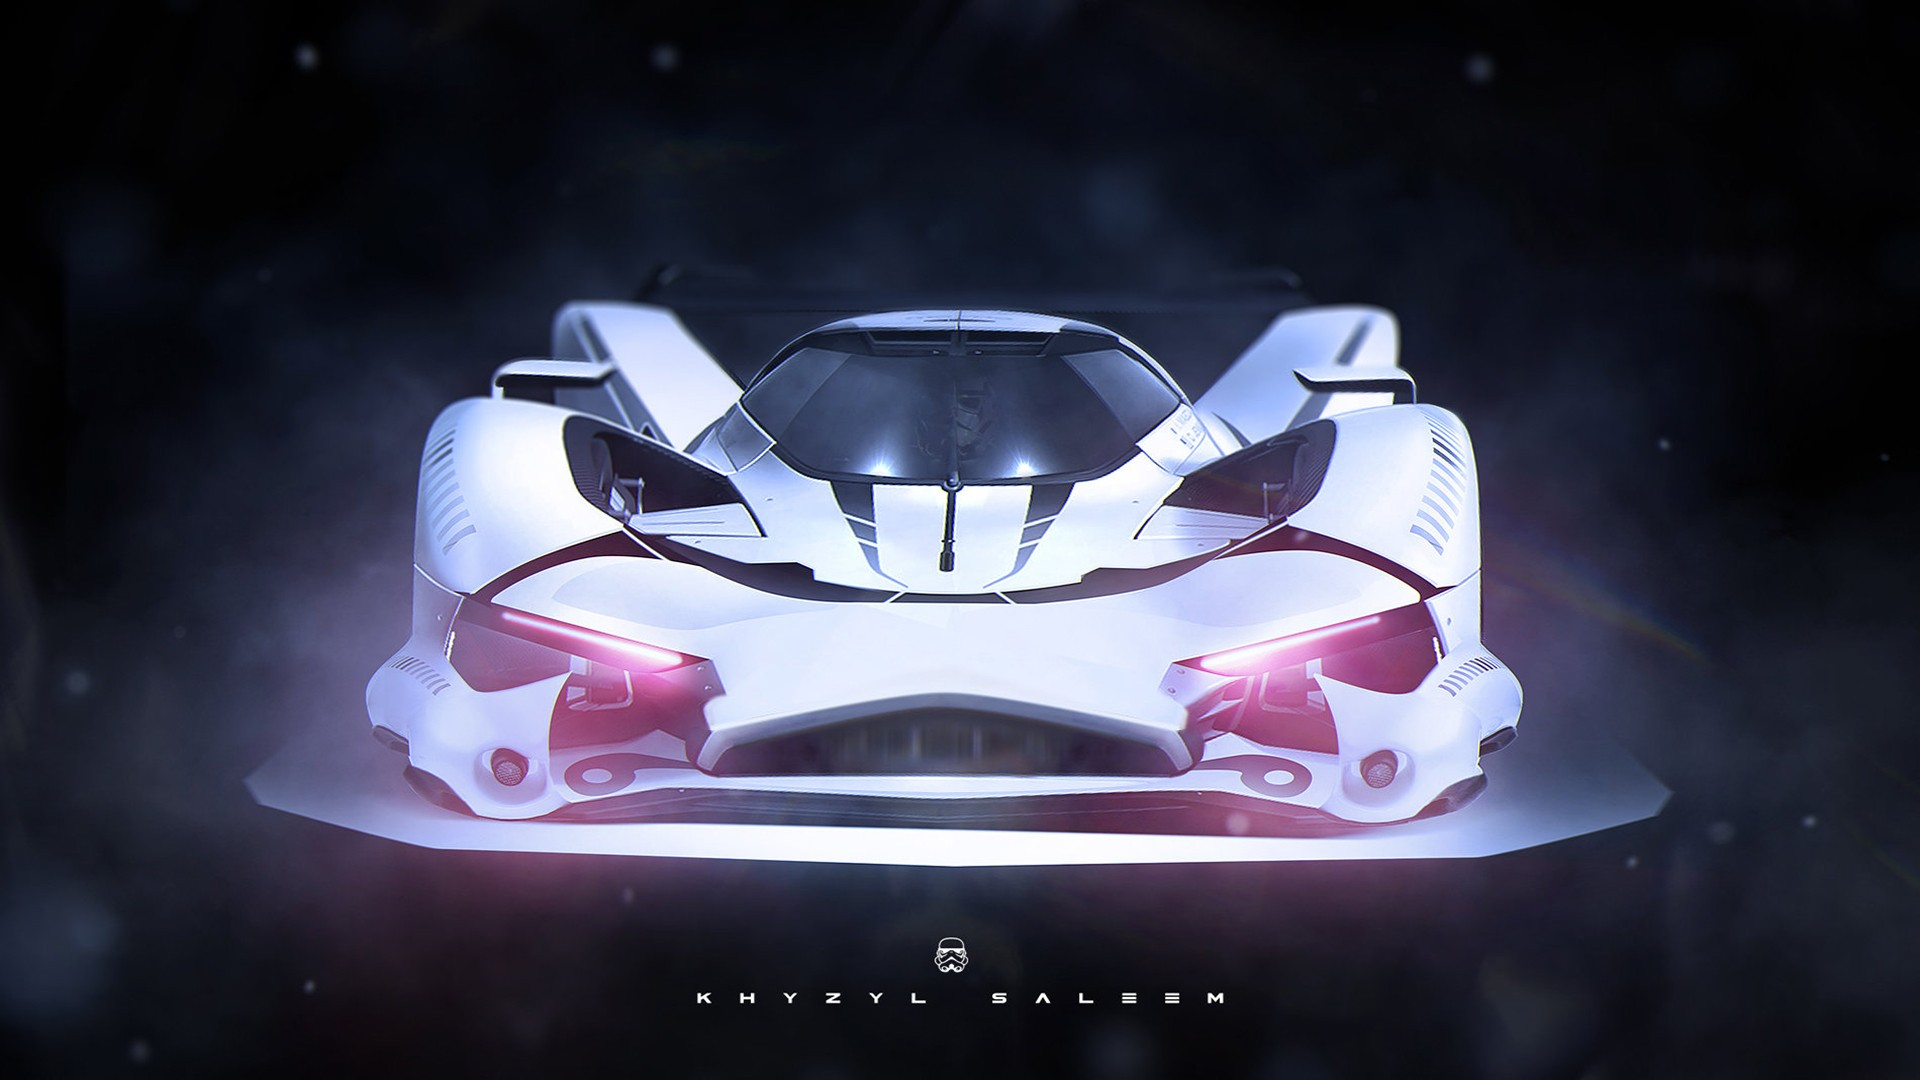 Super Cars 3d Wallpapers Artwork Digital Art Supercars Stormtrooper Star Wars